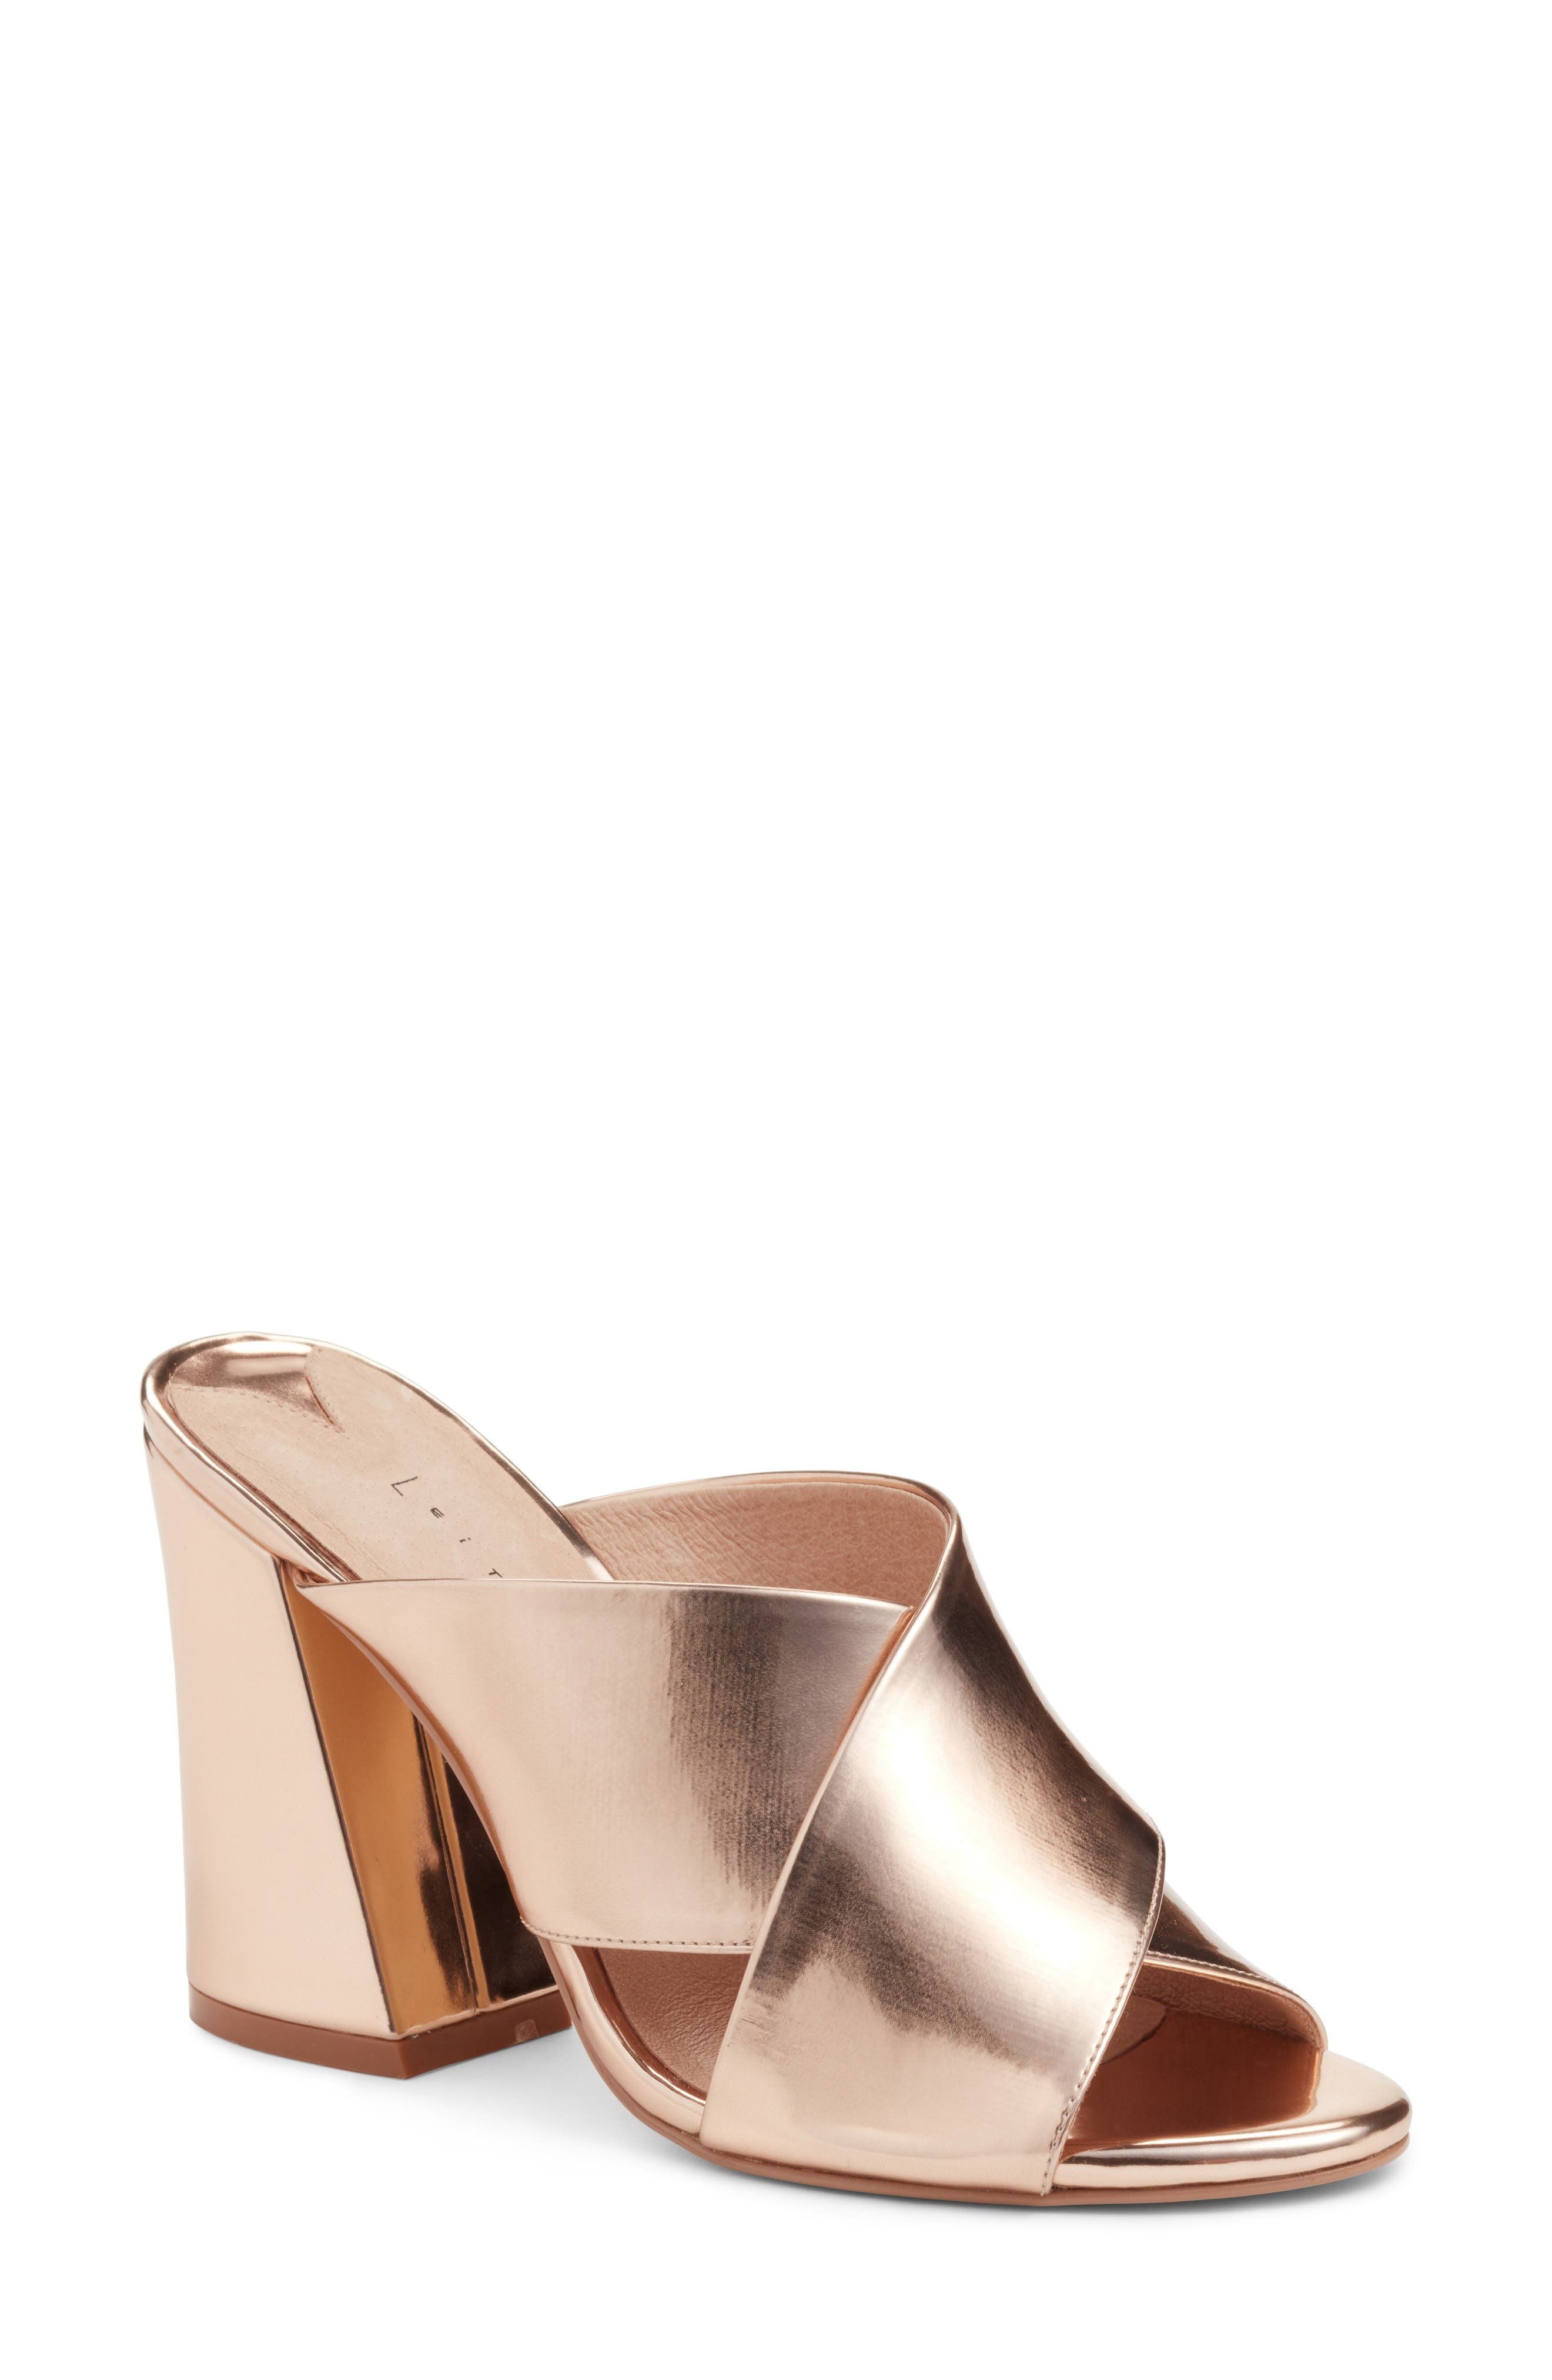 Cammie Block Heel Sandal,                             Main thumbnail 1, color,                             Rosegold Metallic Faux Leather